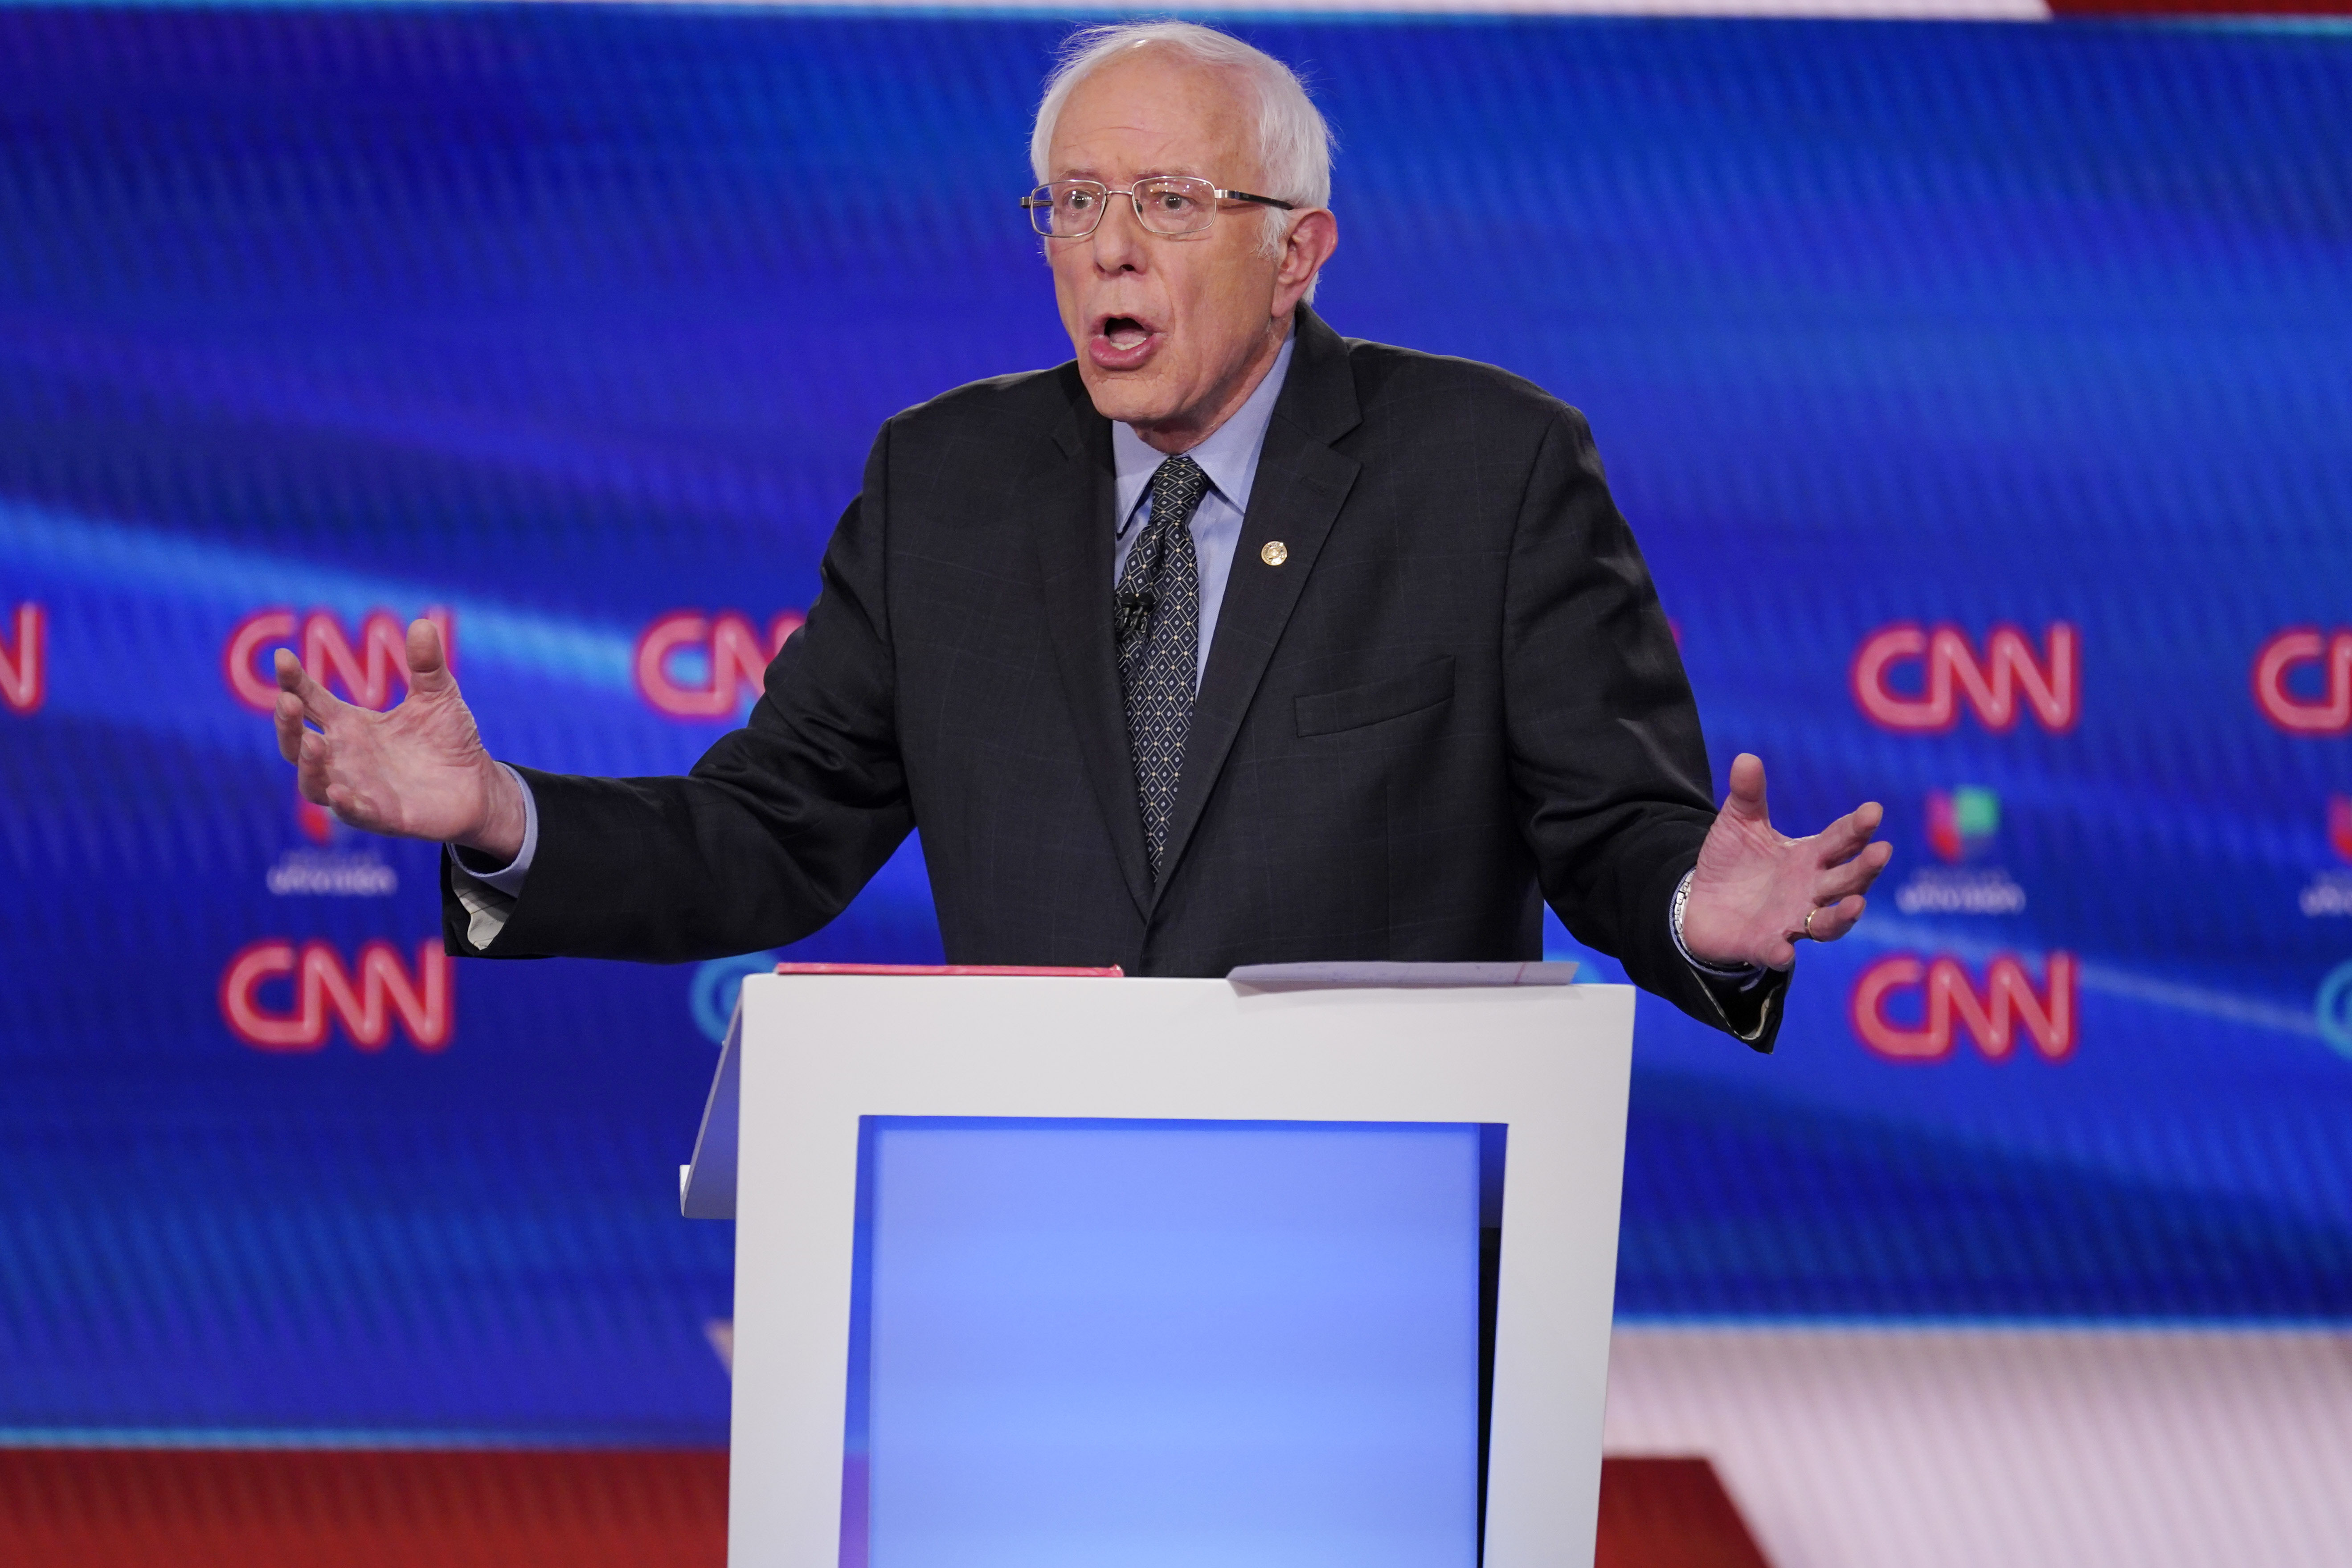 The Latest: Sanders, Biden debate Social Security backing